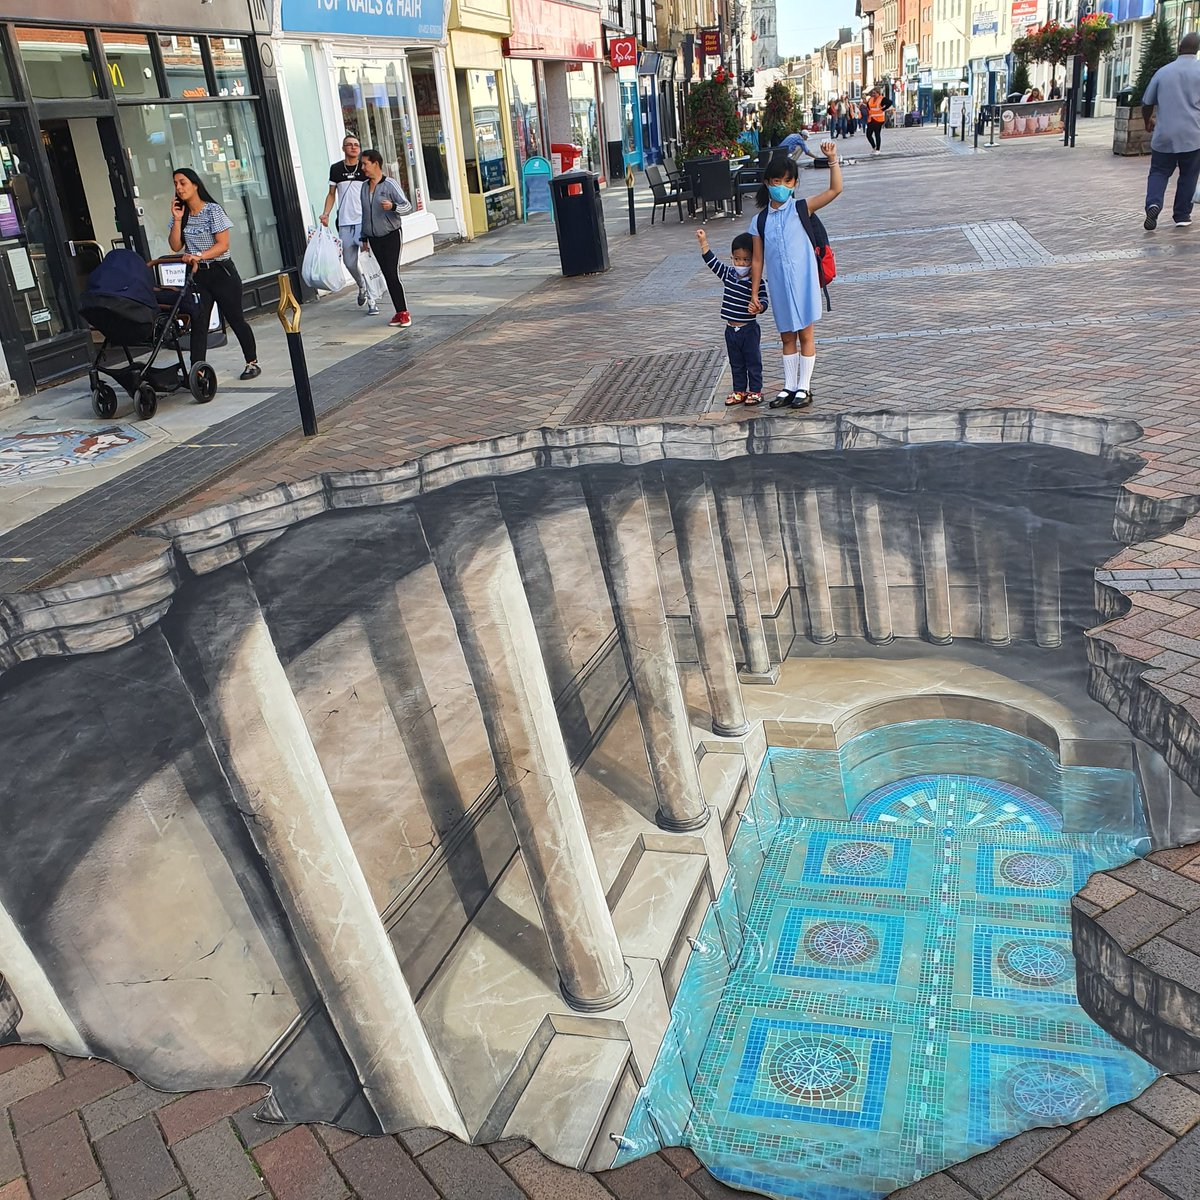 Amazing historic 3D display on our Westgate St. Only until Sunday, come and support  #3dJoeandMax #localbusiness #Cathedralquarter #Highstreetheritage #historicengland #gloucestercitycouncil https://t.co/a83NPb6ER8